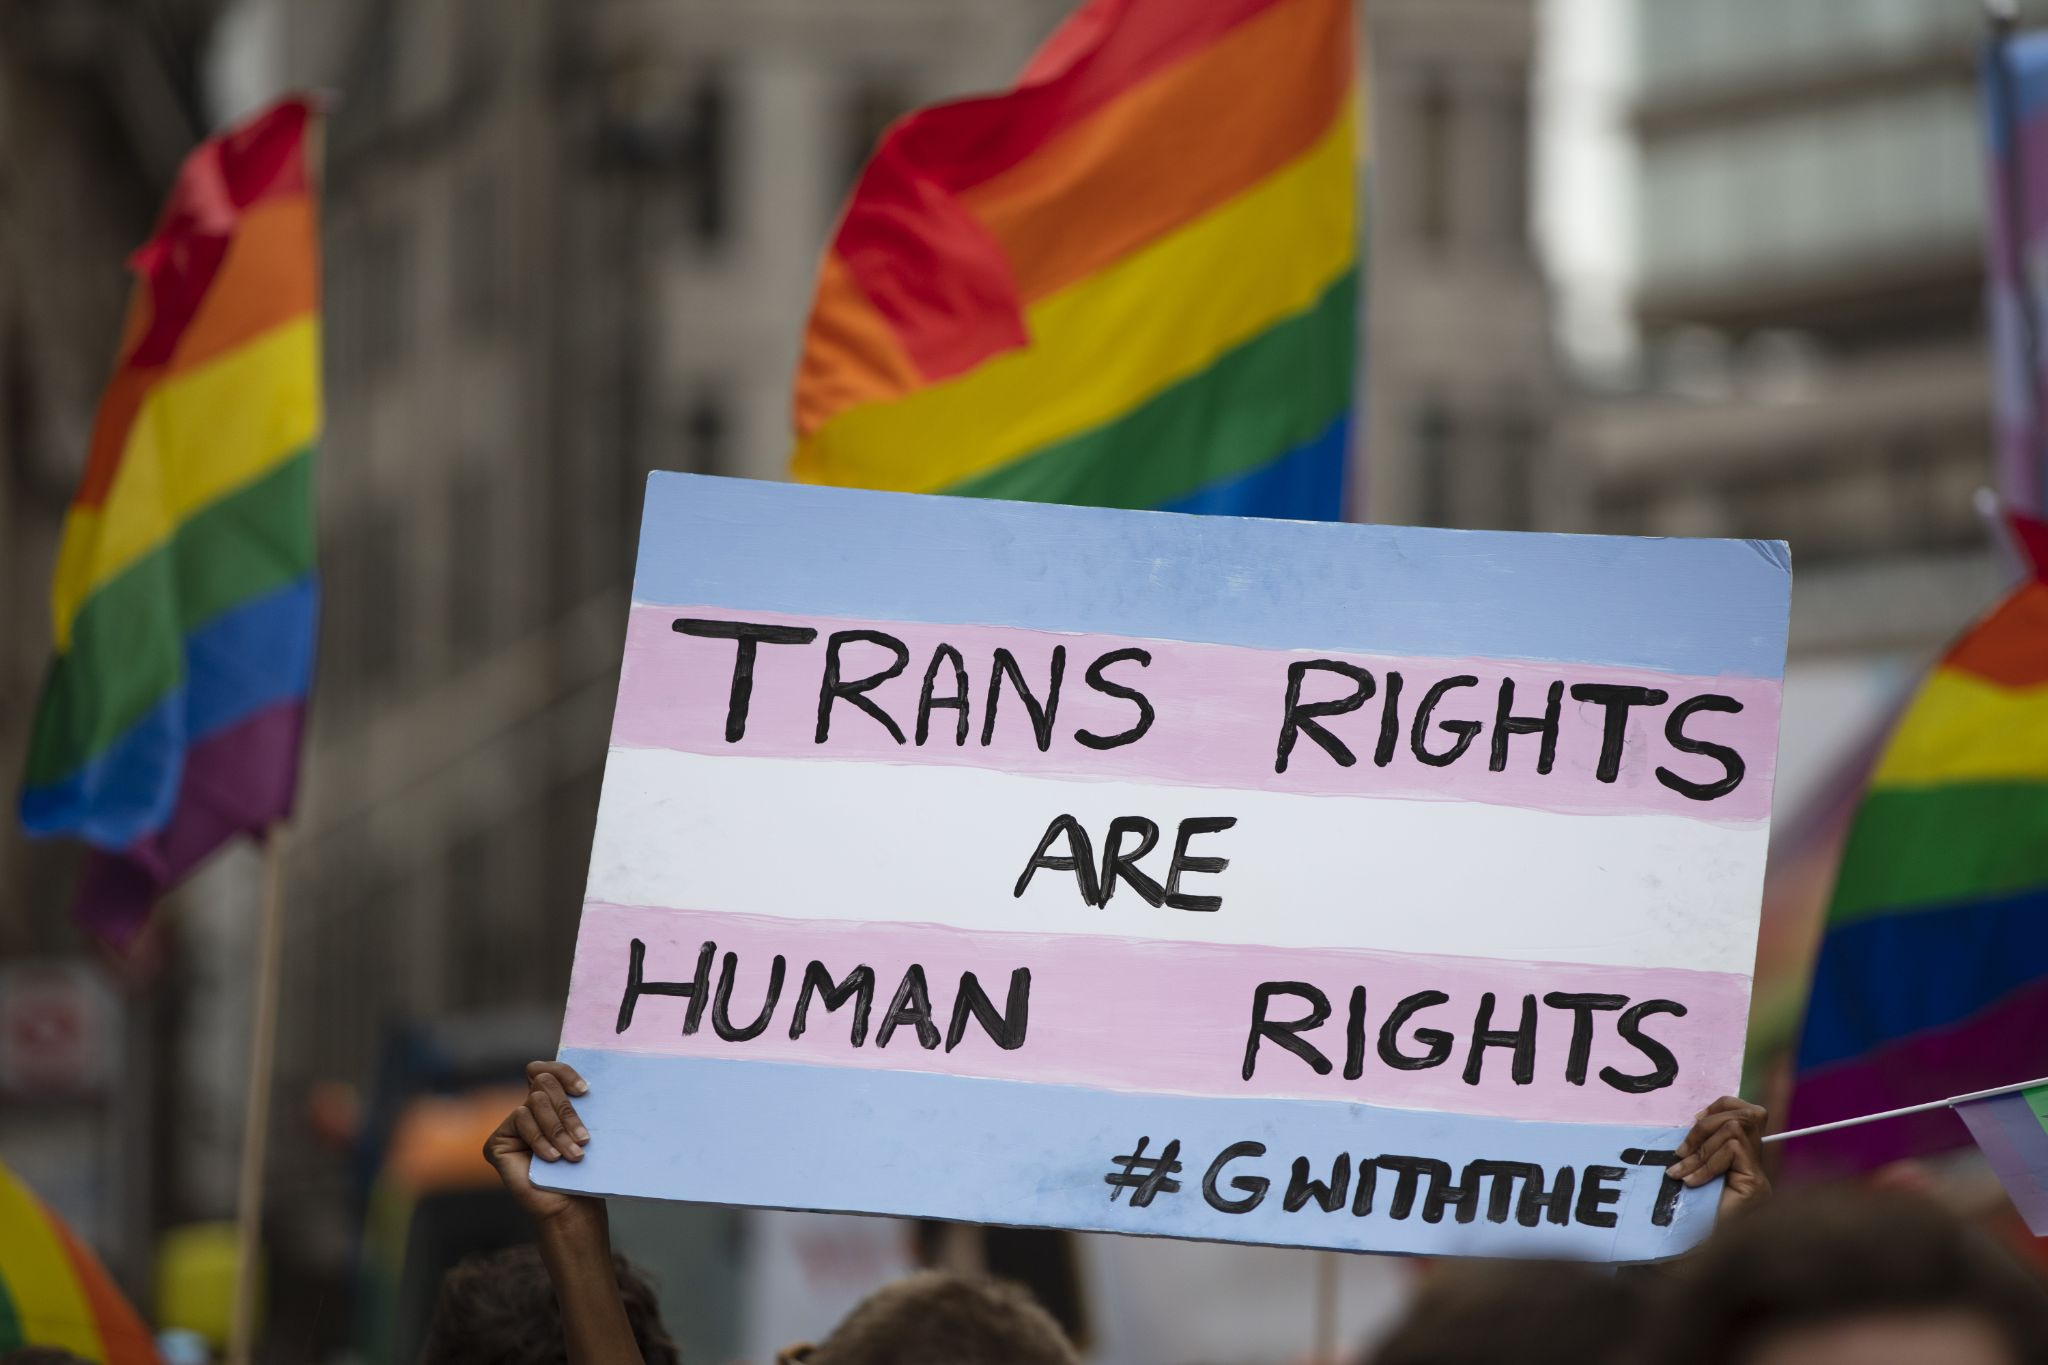 A person holding a pro transgender banner at a gay pride event